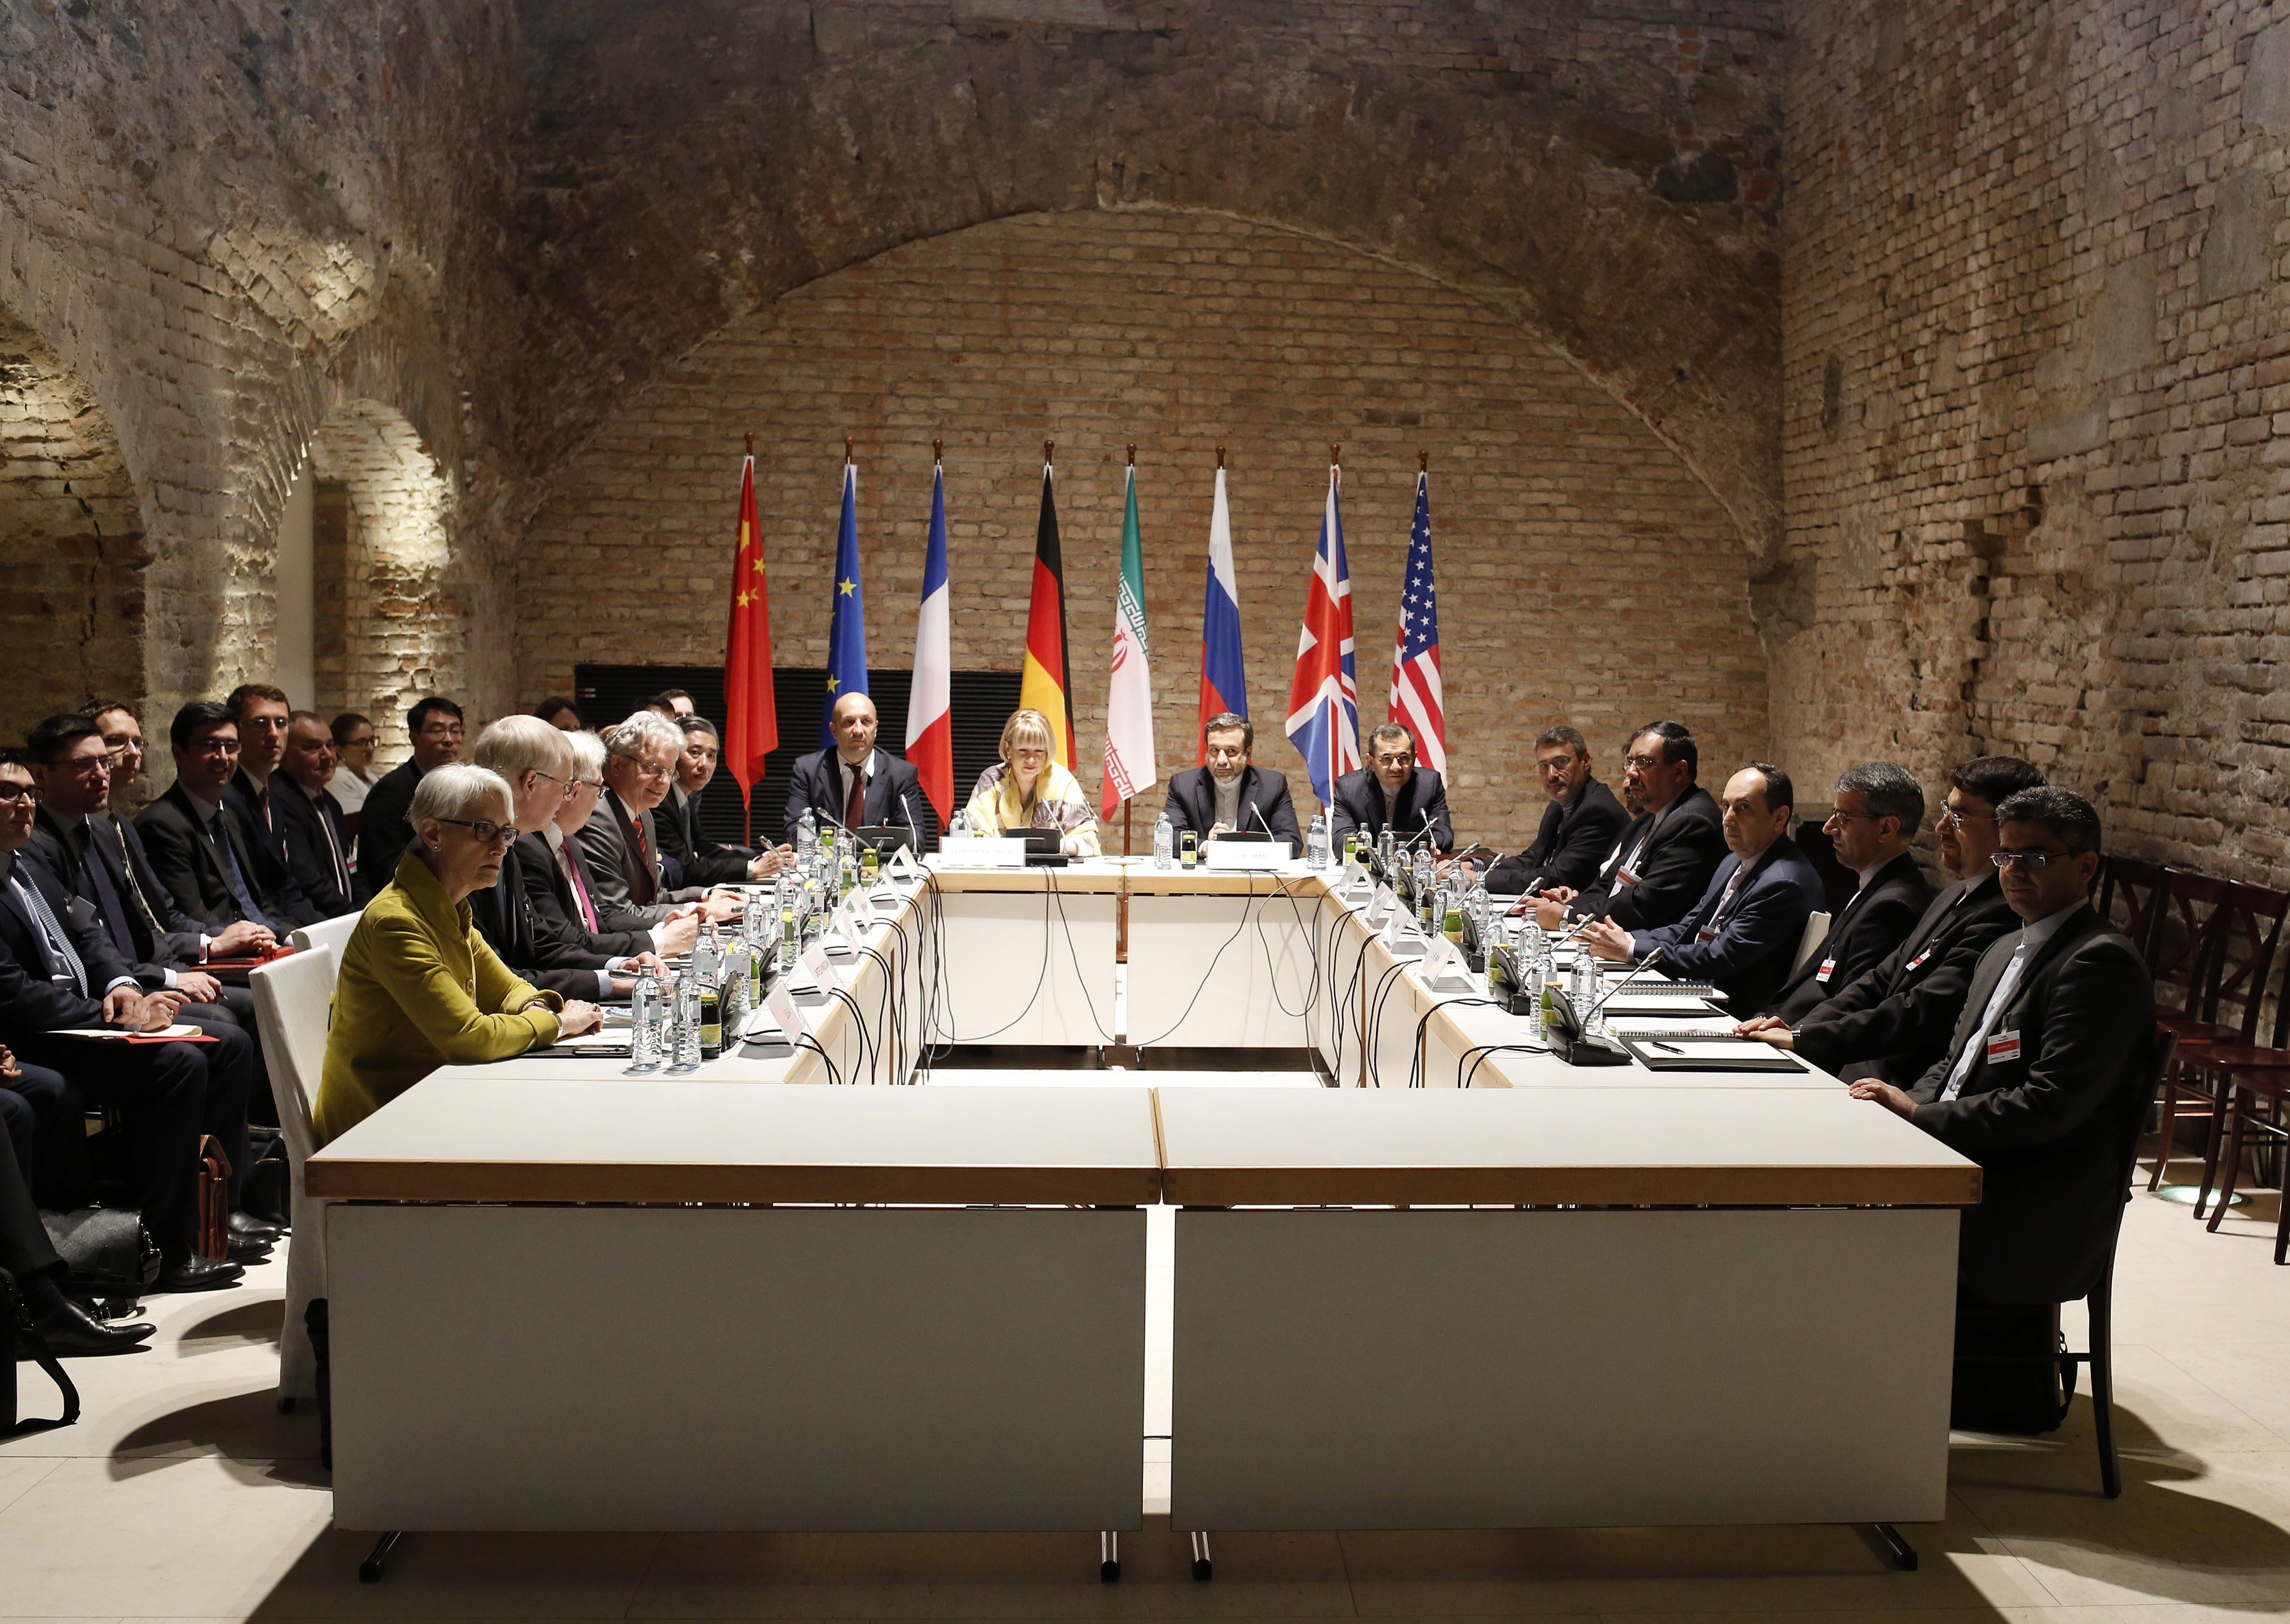 Representatives of Iran and six major powers meet in Vienna, Austria in April 24, 2015, seeking to finalise by June 30, a historic deal curbing Iran´s nuclear programme.